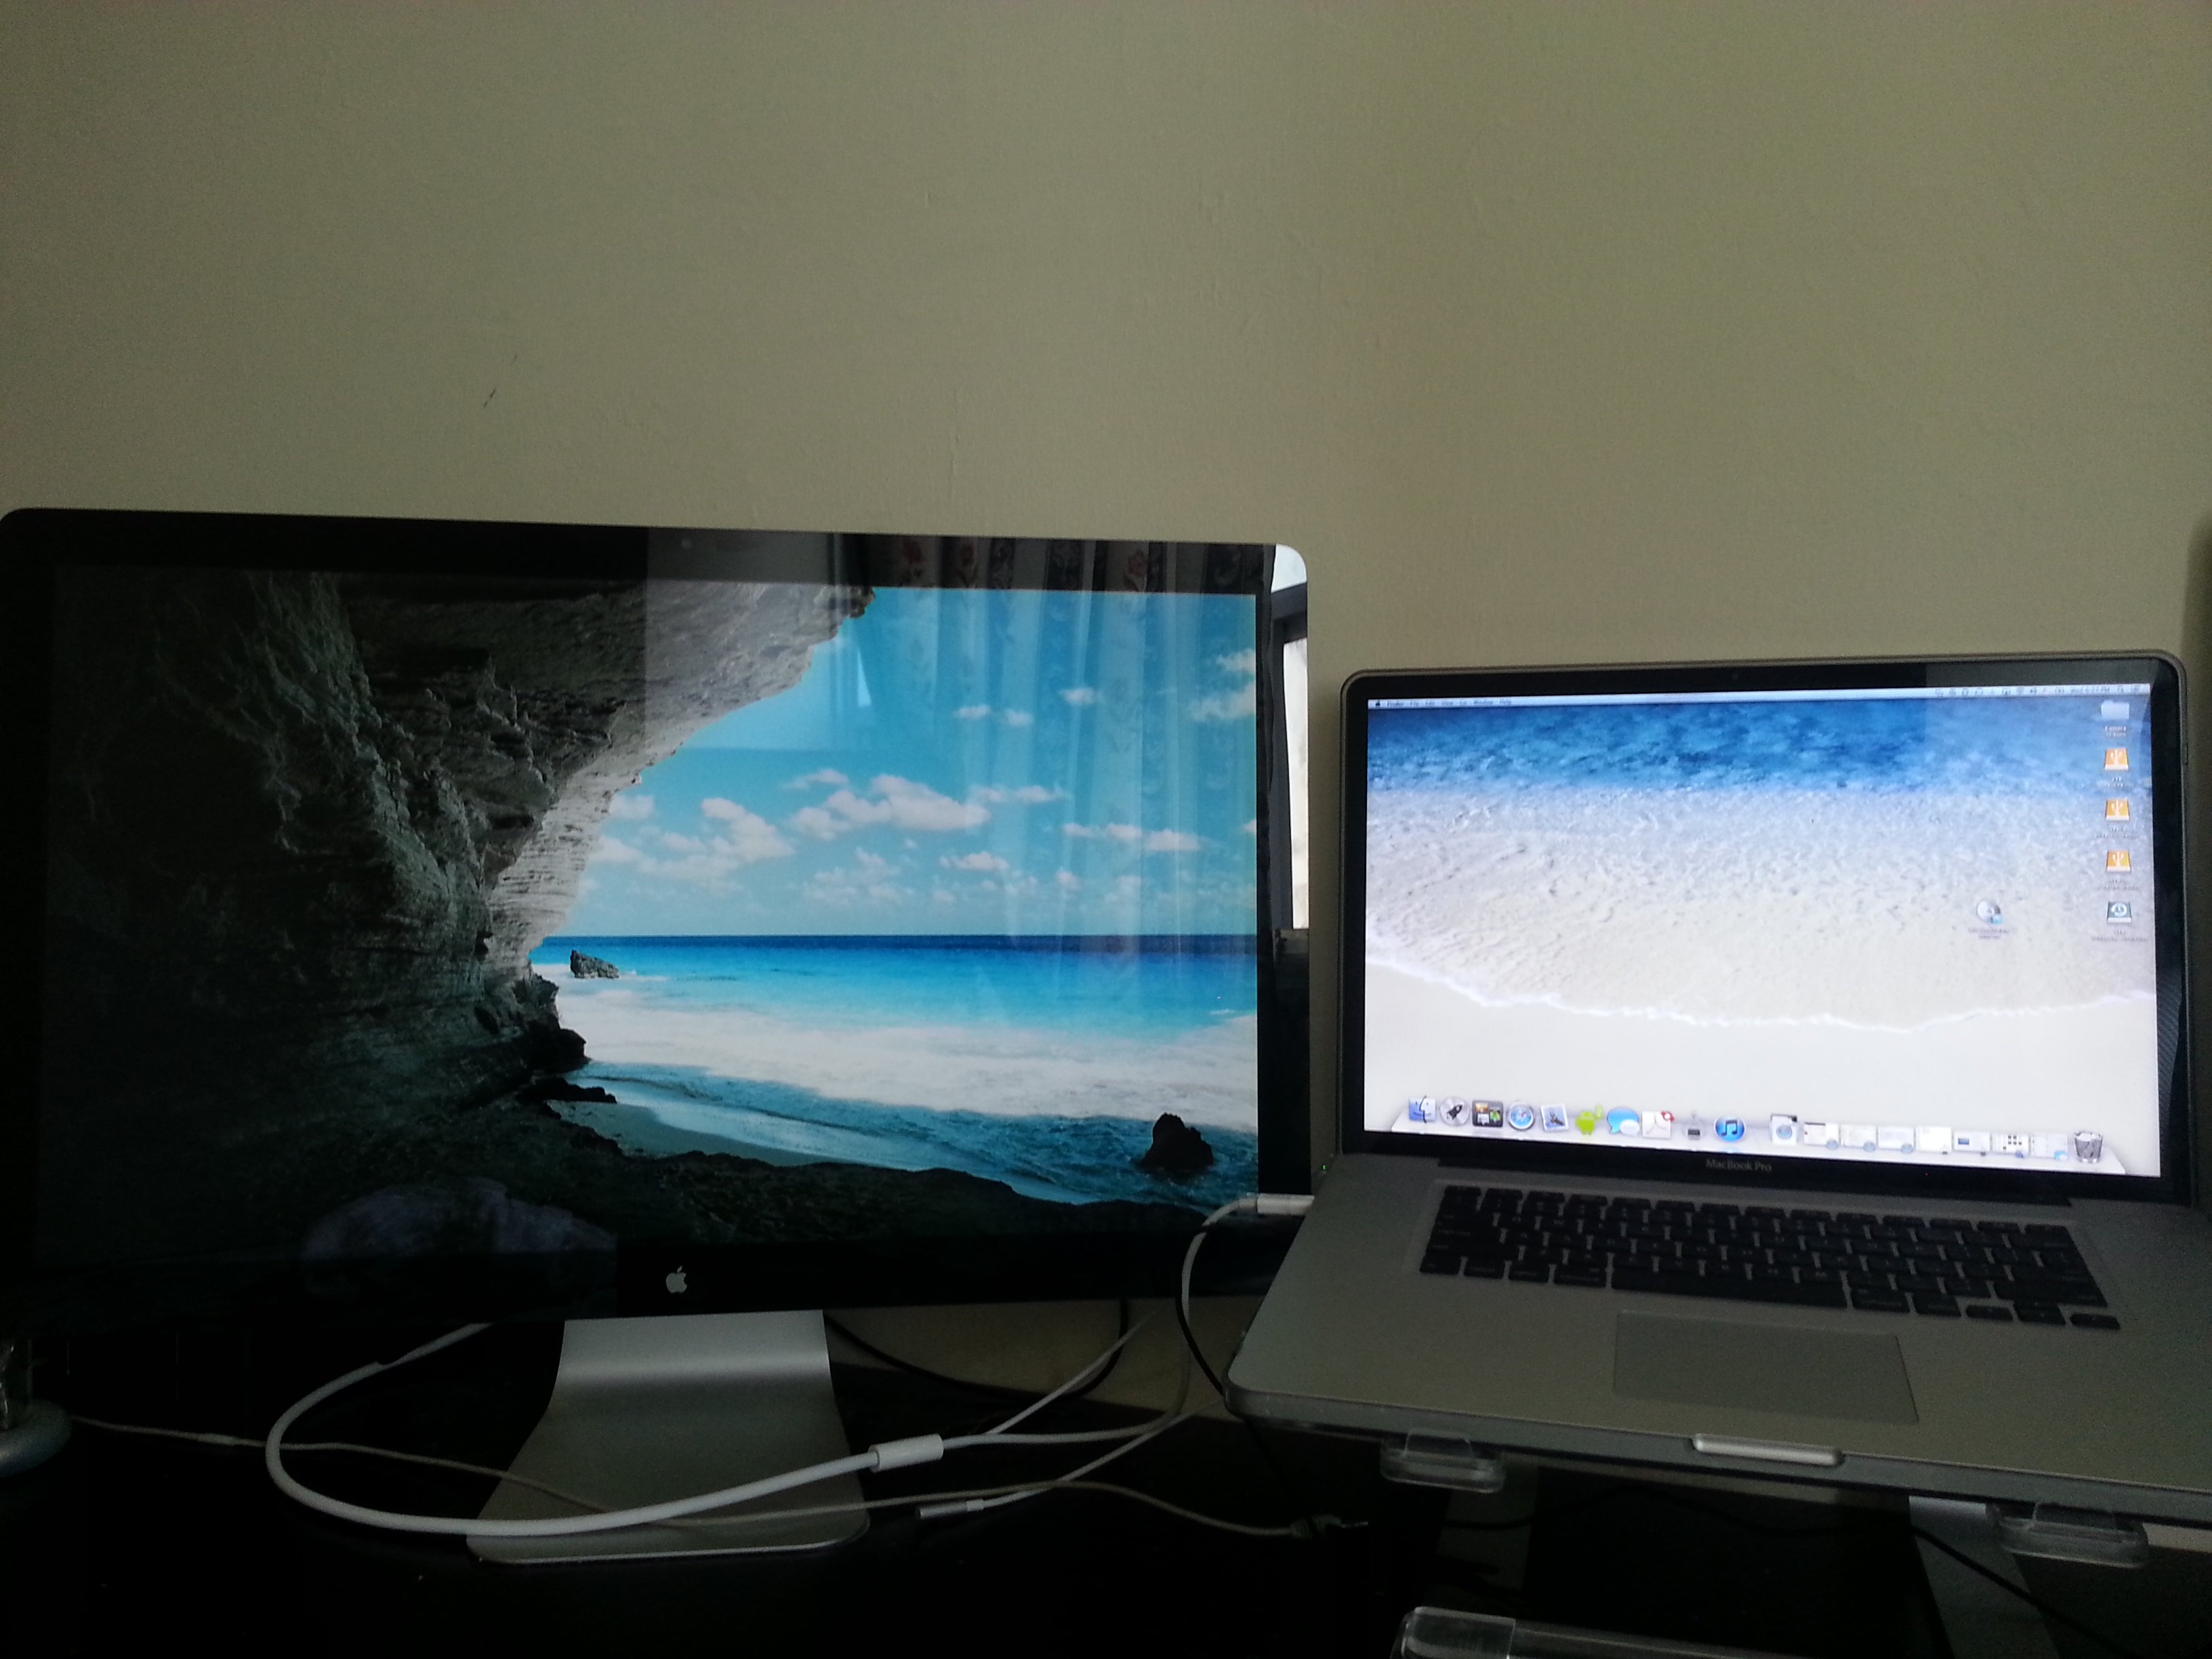 For Sale Macbook Pro 17 Inch Inch With Apple 24 Inch Led